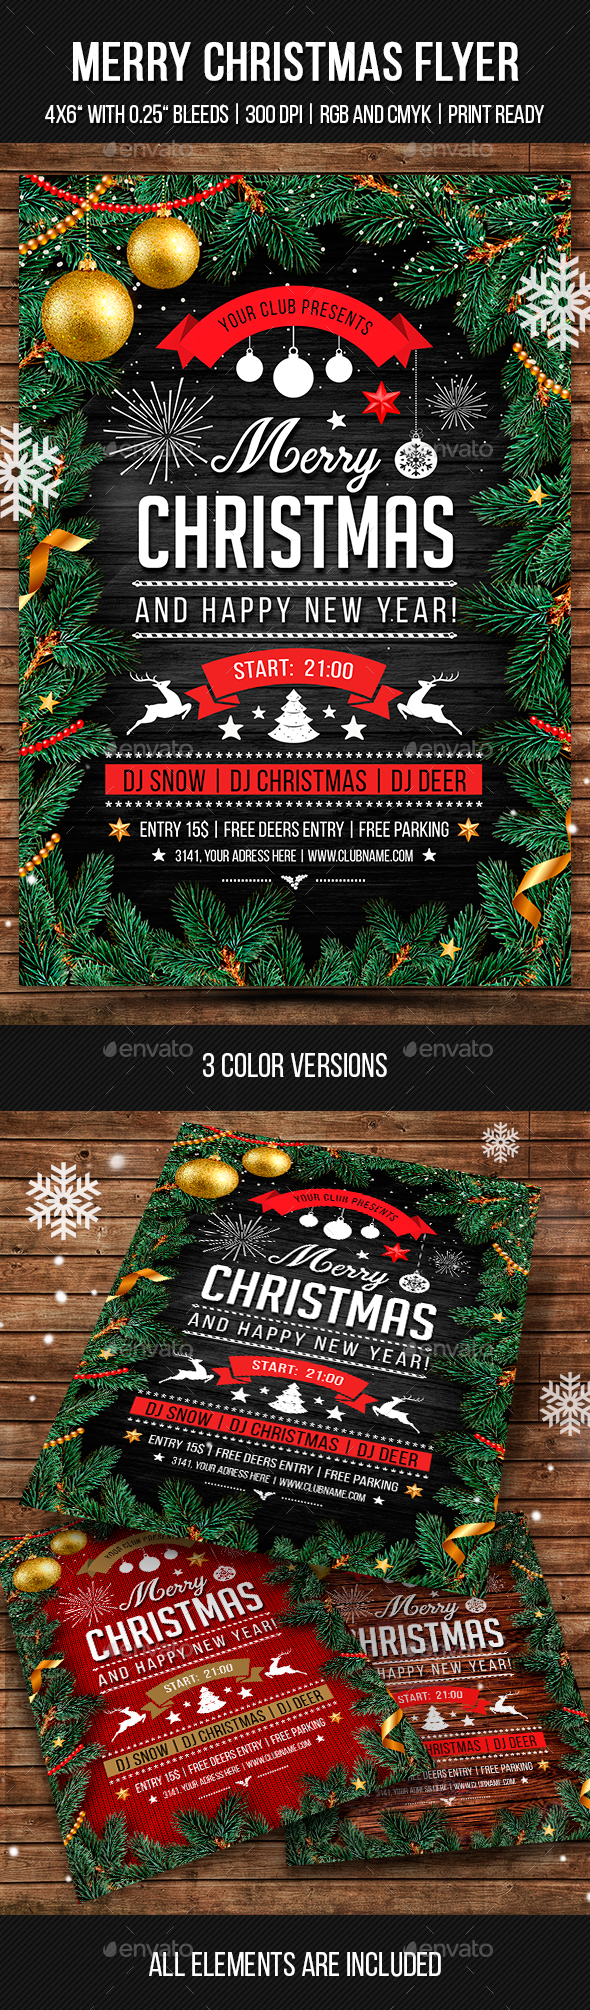 GraphicRiver Merry Christmas Flyer 21026620